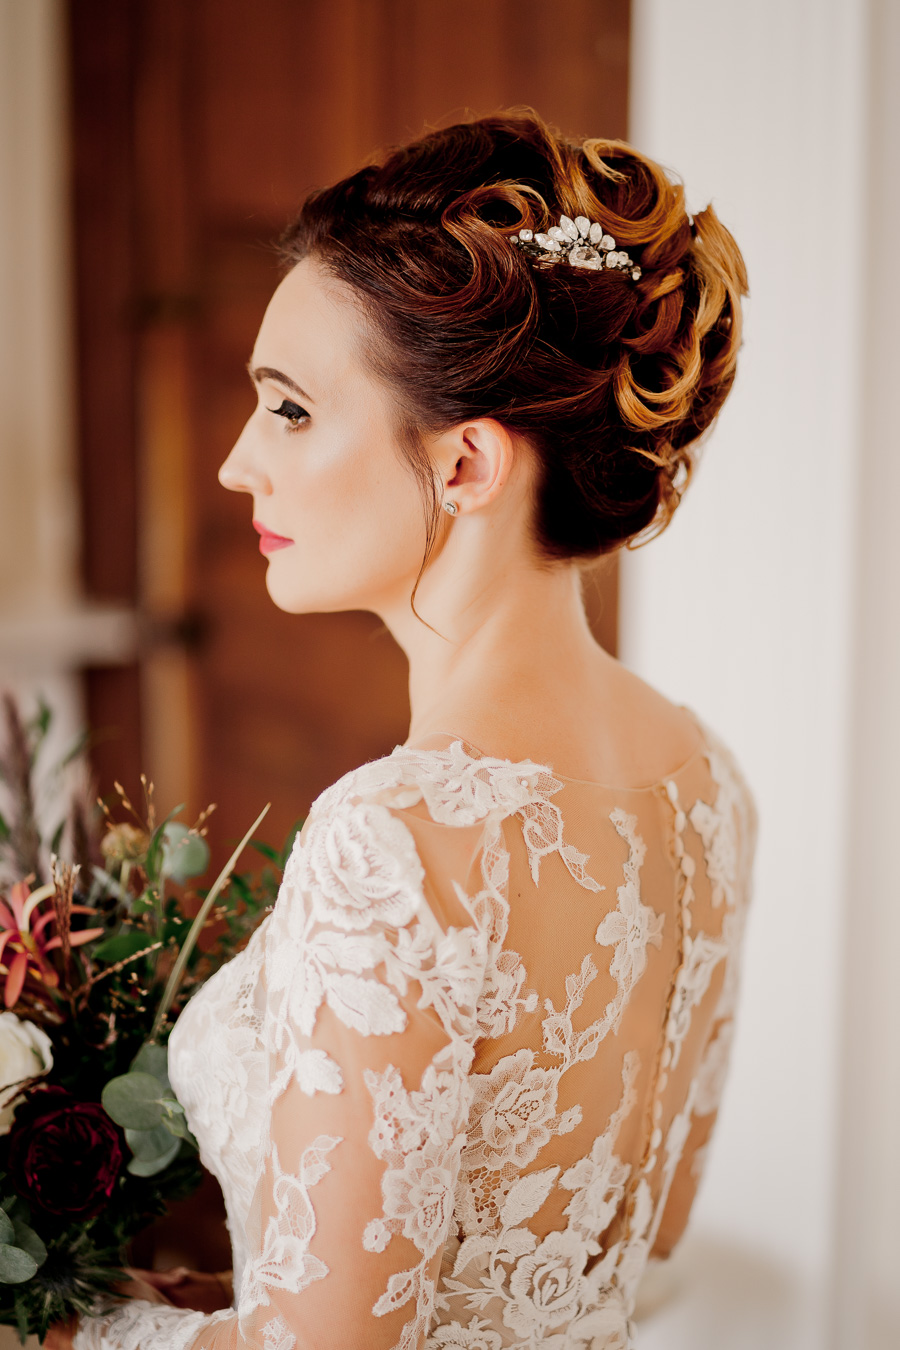 Elegance and glamour, Vanity Fair style. A styled wedding photoshoot from Davenport House. Image Laura May Photography (19)